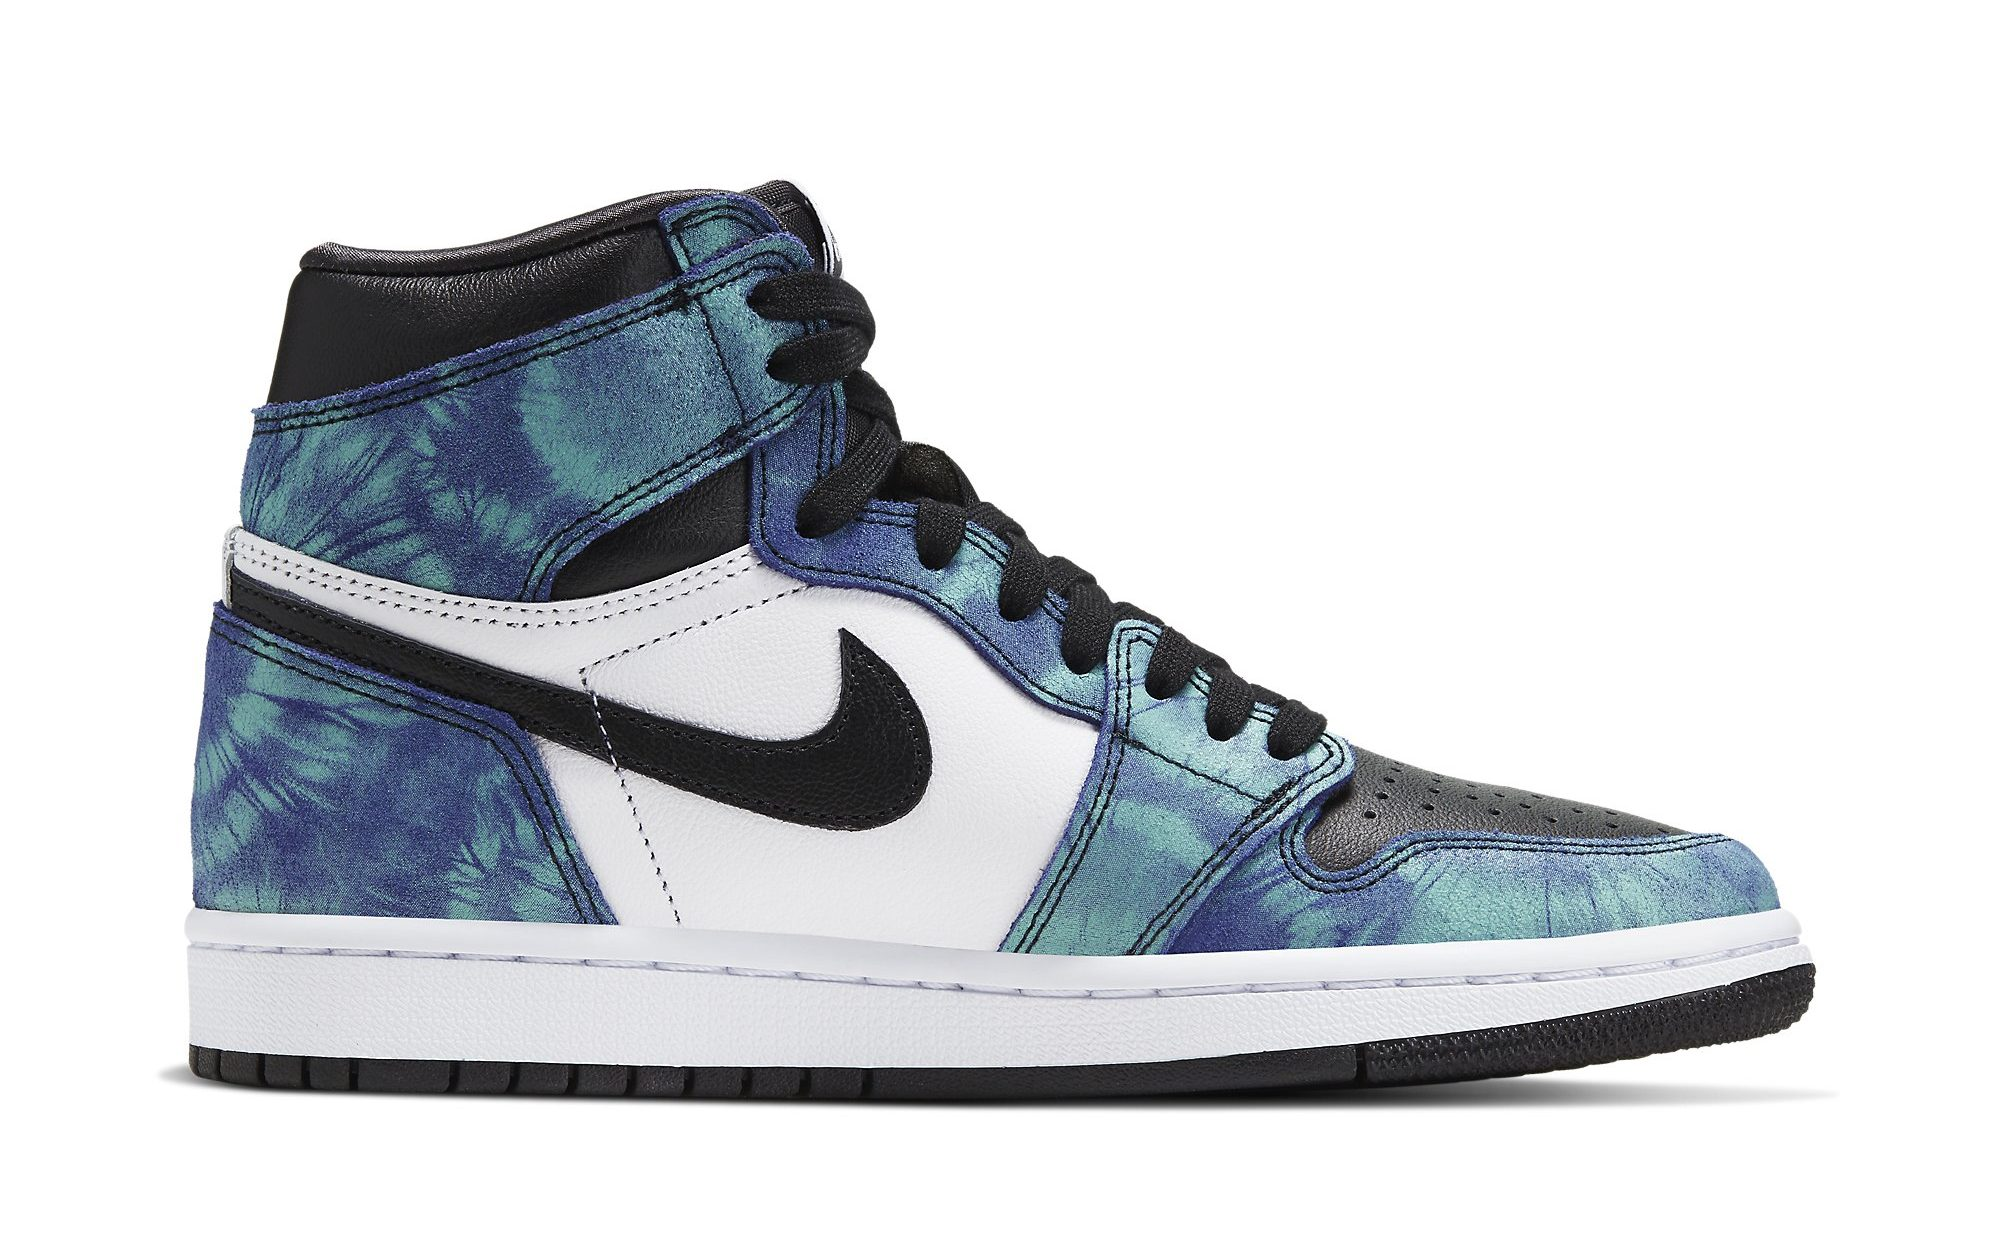 Air Jordan 1 Retro High OG Women's 'Tie-Dye' Medial